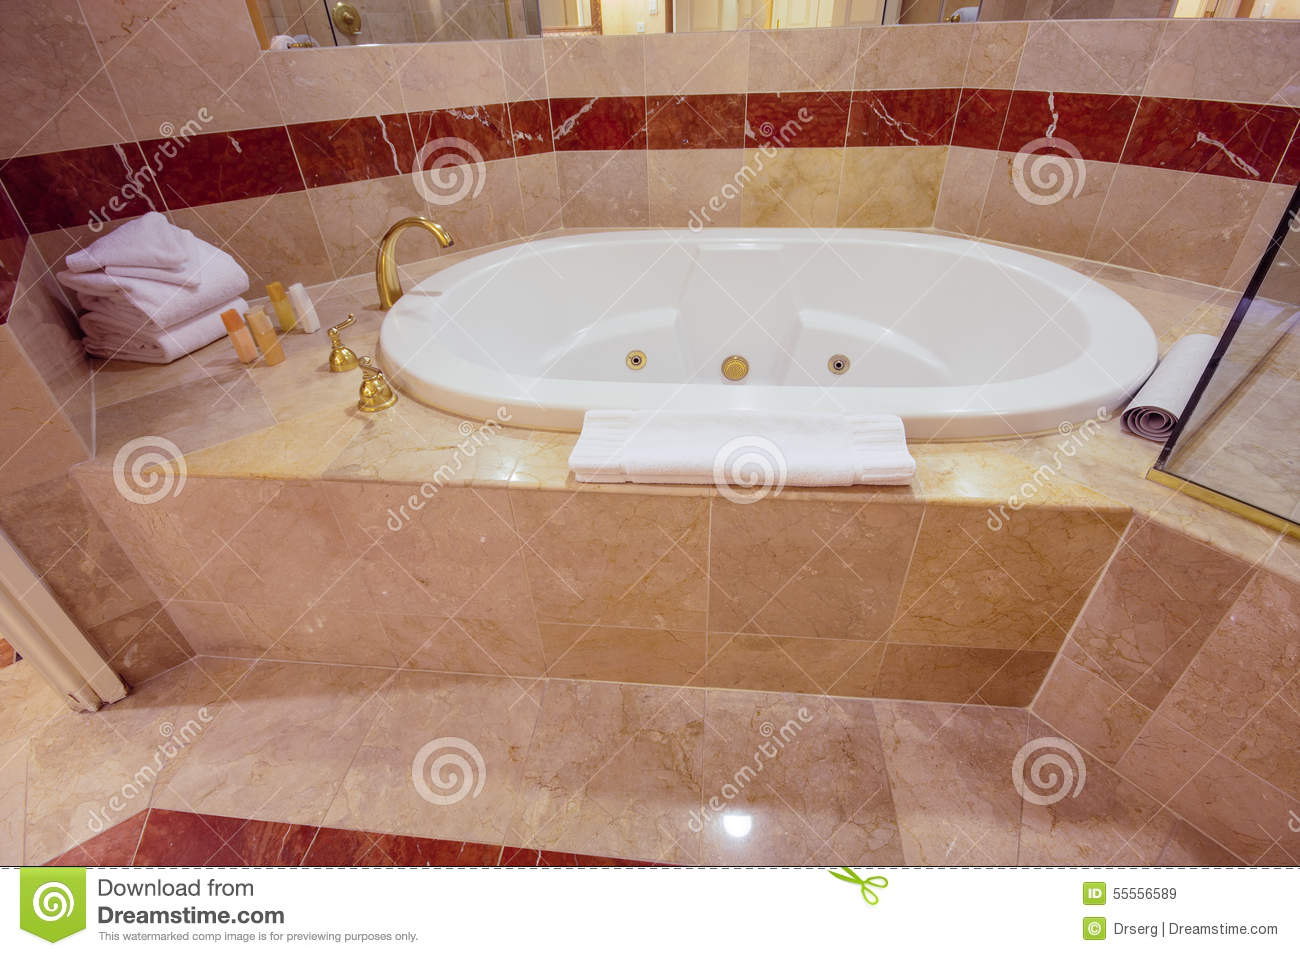 White Jacuzzi Bathtub Decorated With Marble Tiles Stock Image ...